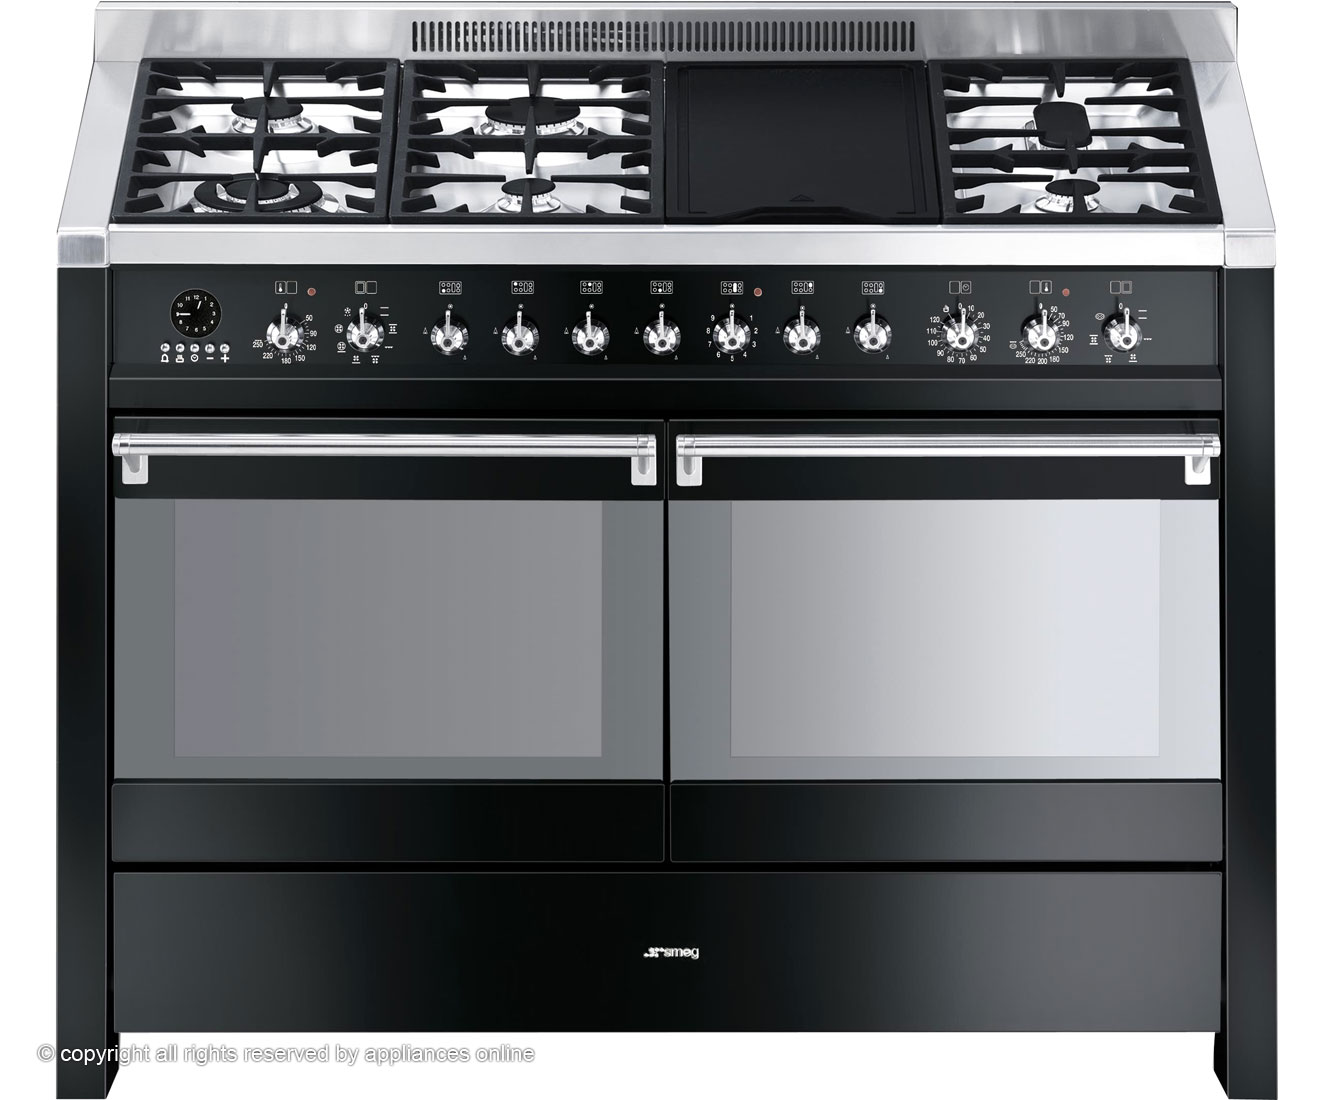 smeg opera a4bl 8 120cm dual fuel range cooker review. Black Bedroom Furniture Sets. Home Design Ideas